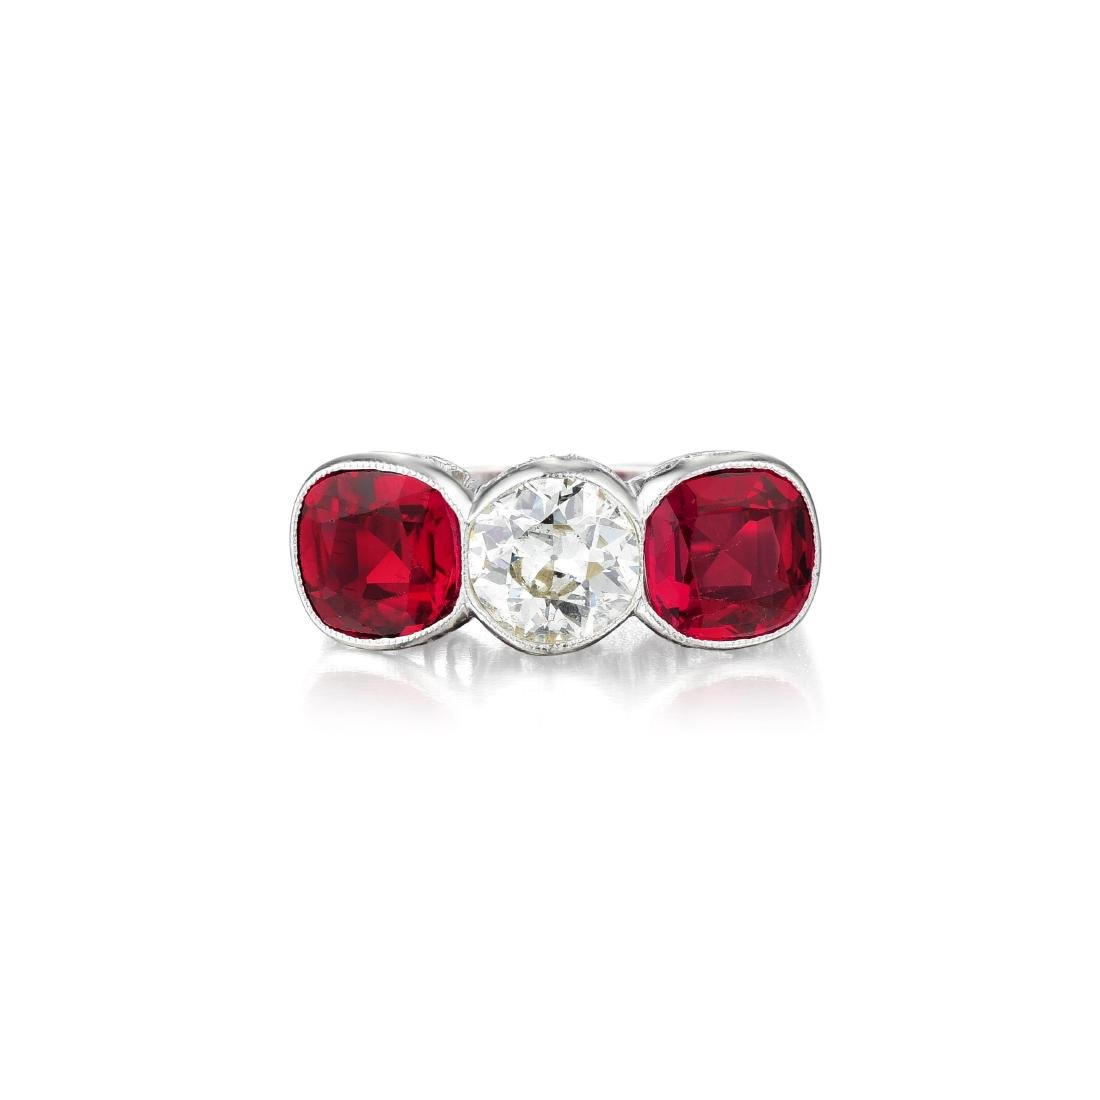 An Art Deco Diamond and Synthetic Ruby Ring